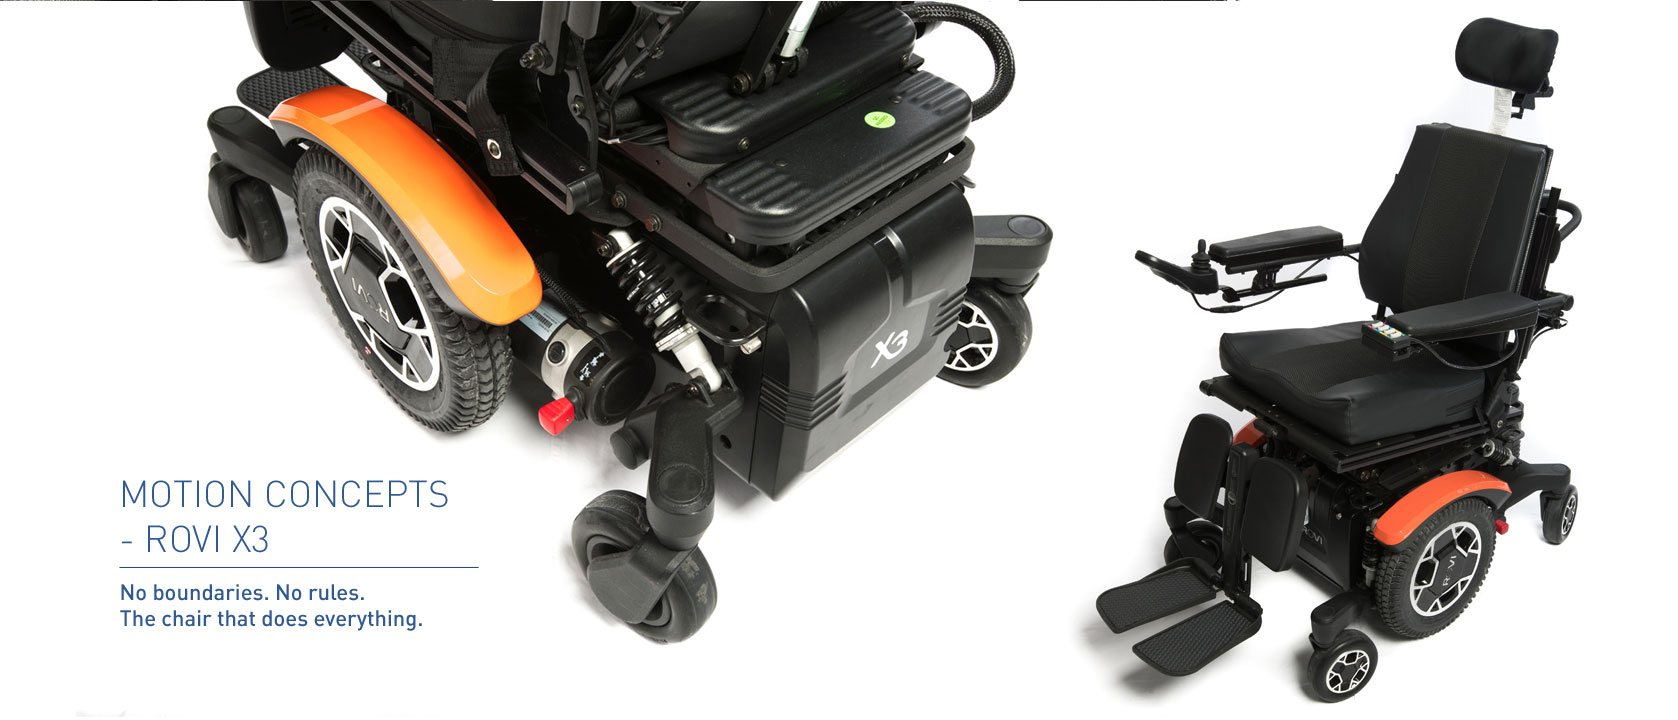 Sale, Rental and Repair of Manual | Powered Wheelchairs - Safe Mobility